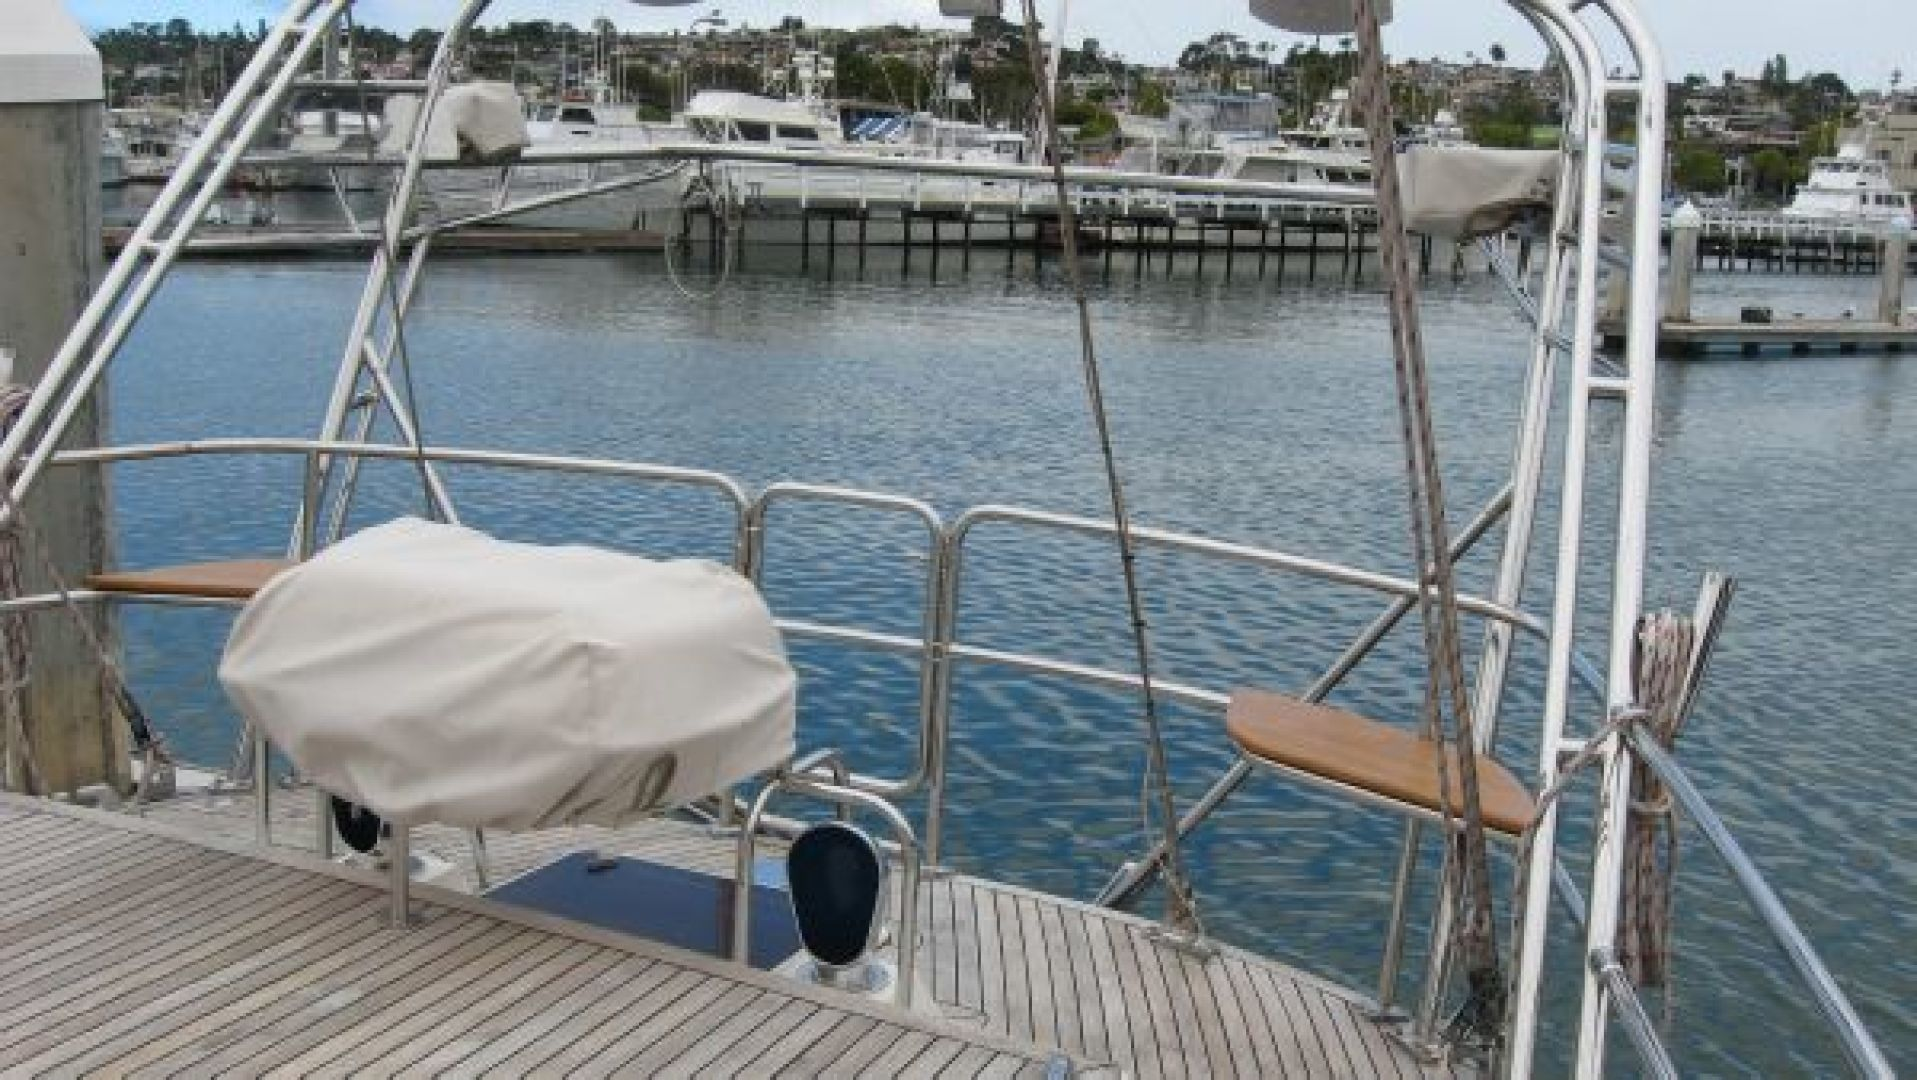 Tayana-58 Deck Saloon 2006-Majestic San Diego-California-United States-Aft Seats  Liferaft  Cradle-1110924 | Thumbnail